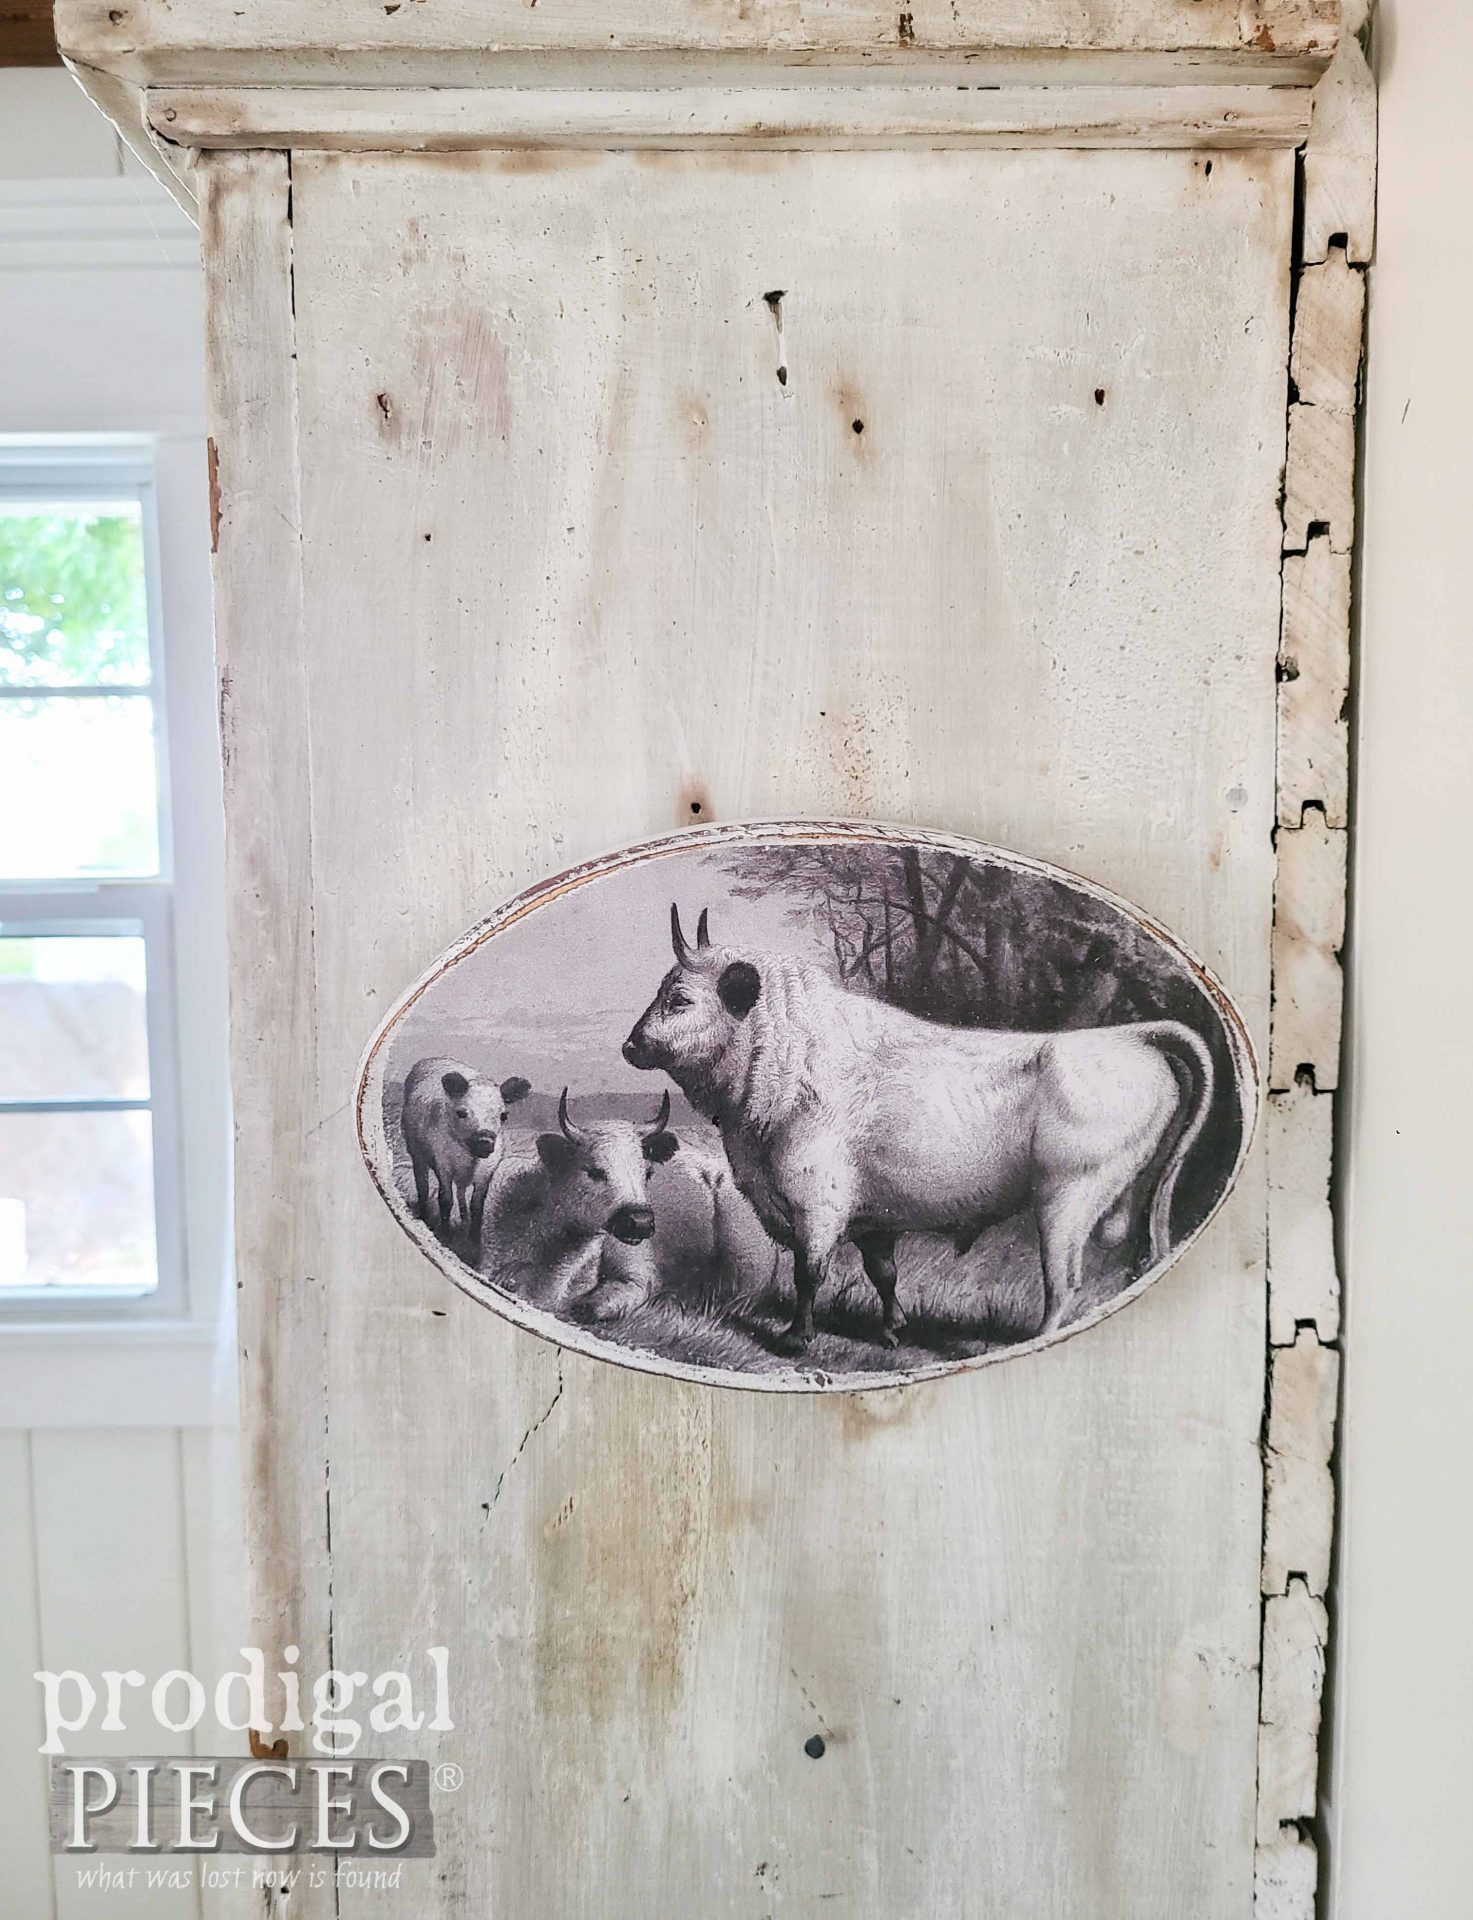 Black and White Cow Print Art | Prodigal Pieces | prodigalpieces.com #prodigalpieces #cow #farmhouse #art